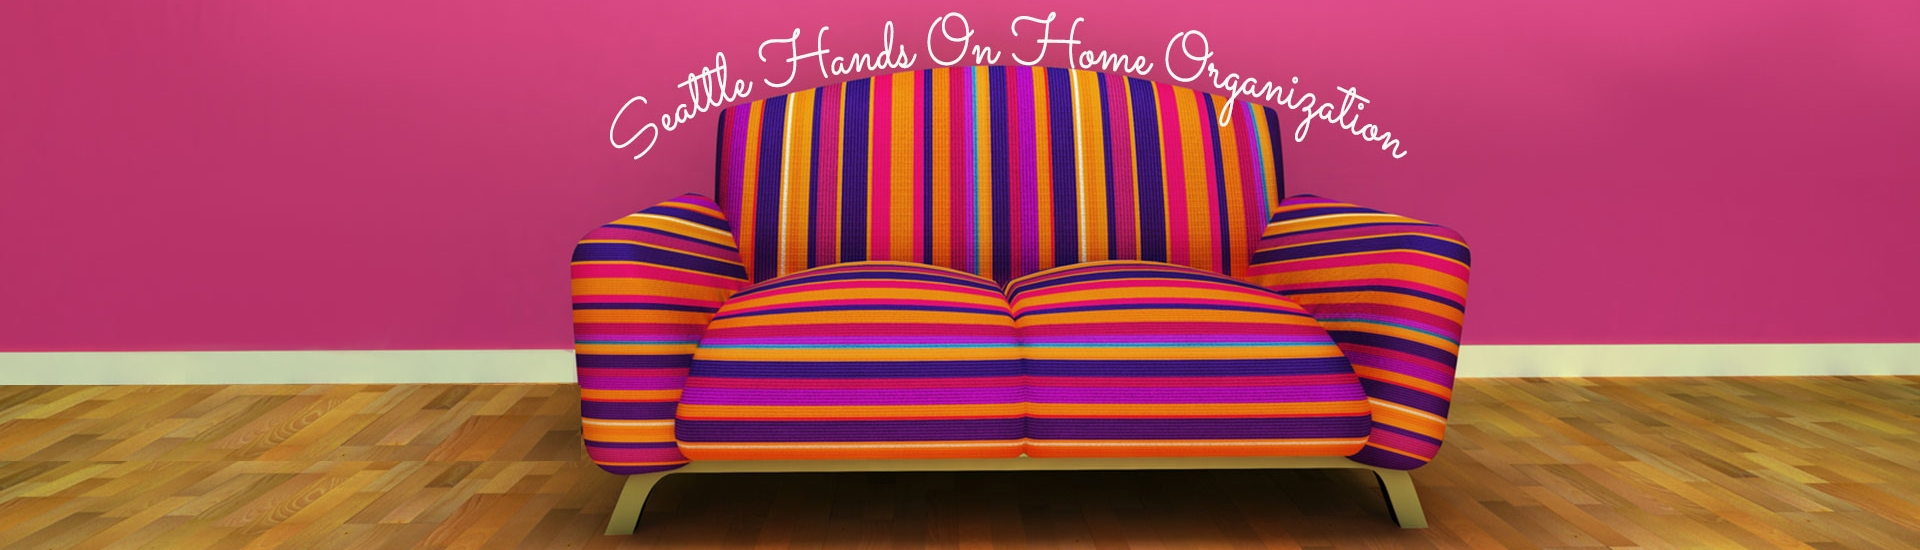 pink-couch-solo-anna-reedy-home-organization